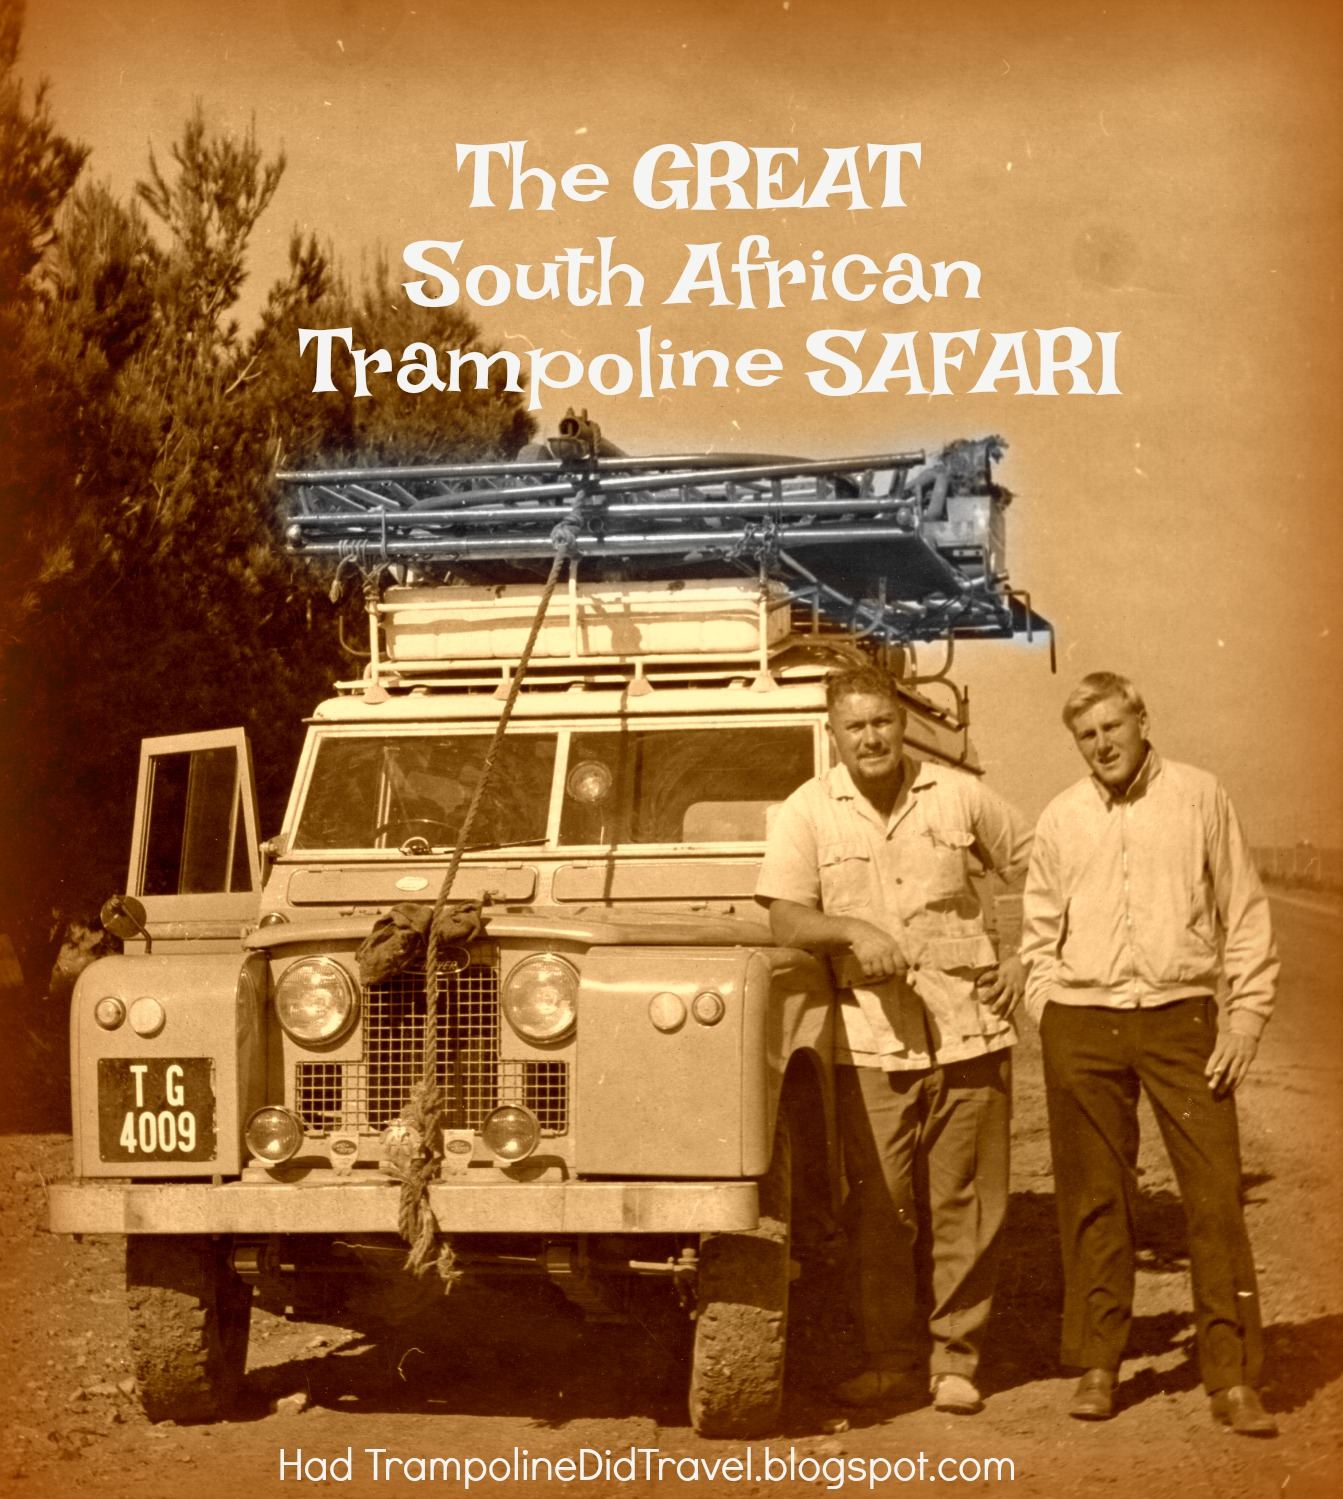 The GREAT South African Trampoline Safari